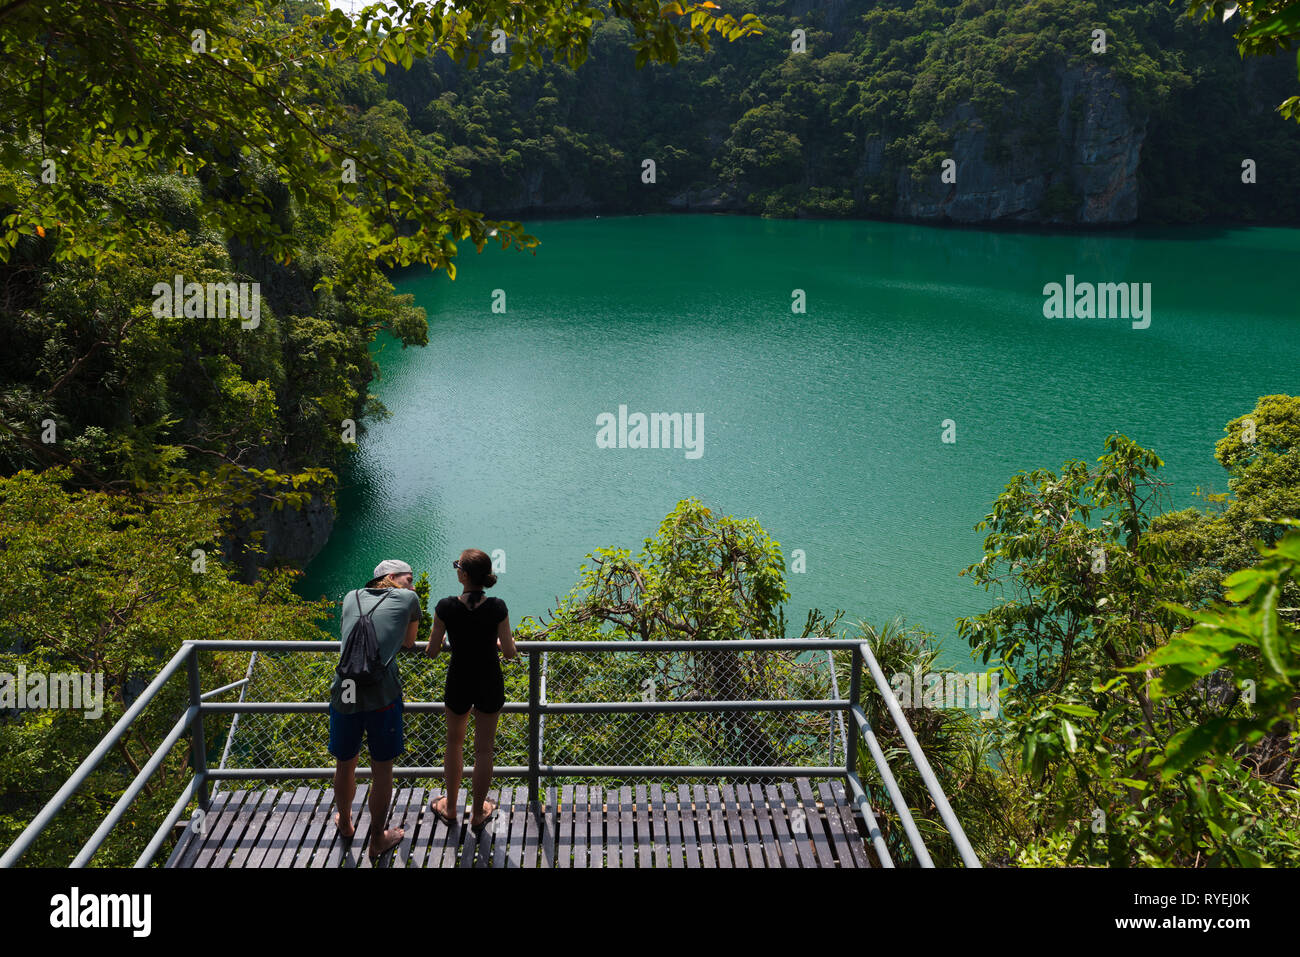 Emerald Lake (Blue Lagoon) in Ko Mae Ko island, one of is Ang Thong National Marine Park islands, Thailand Stock Photo